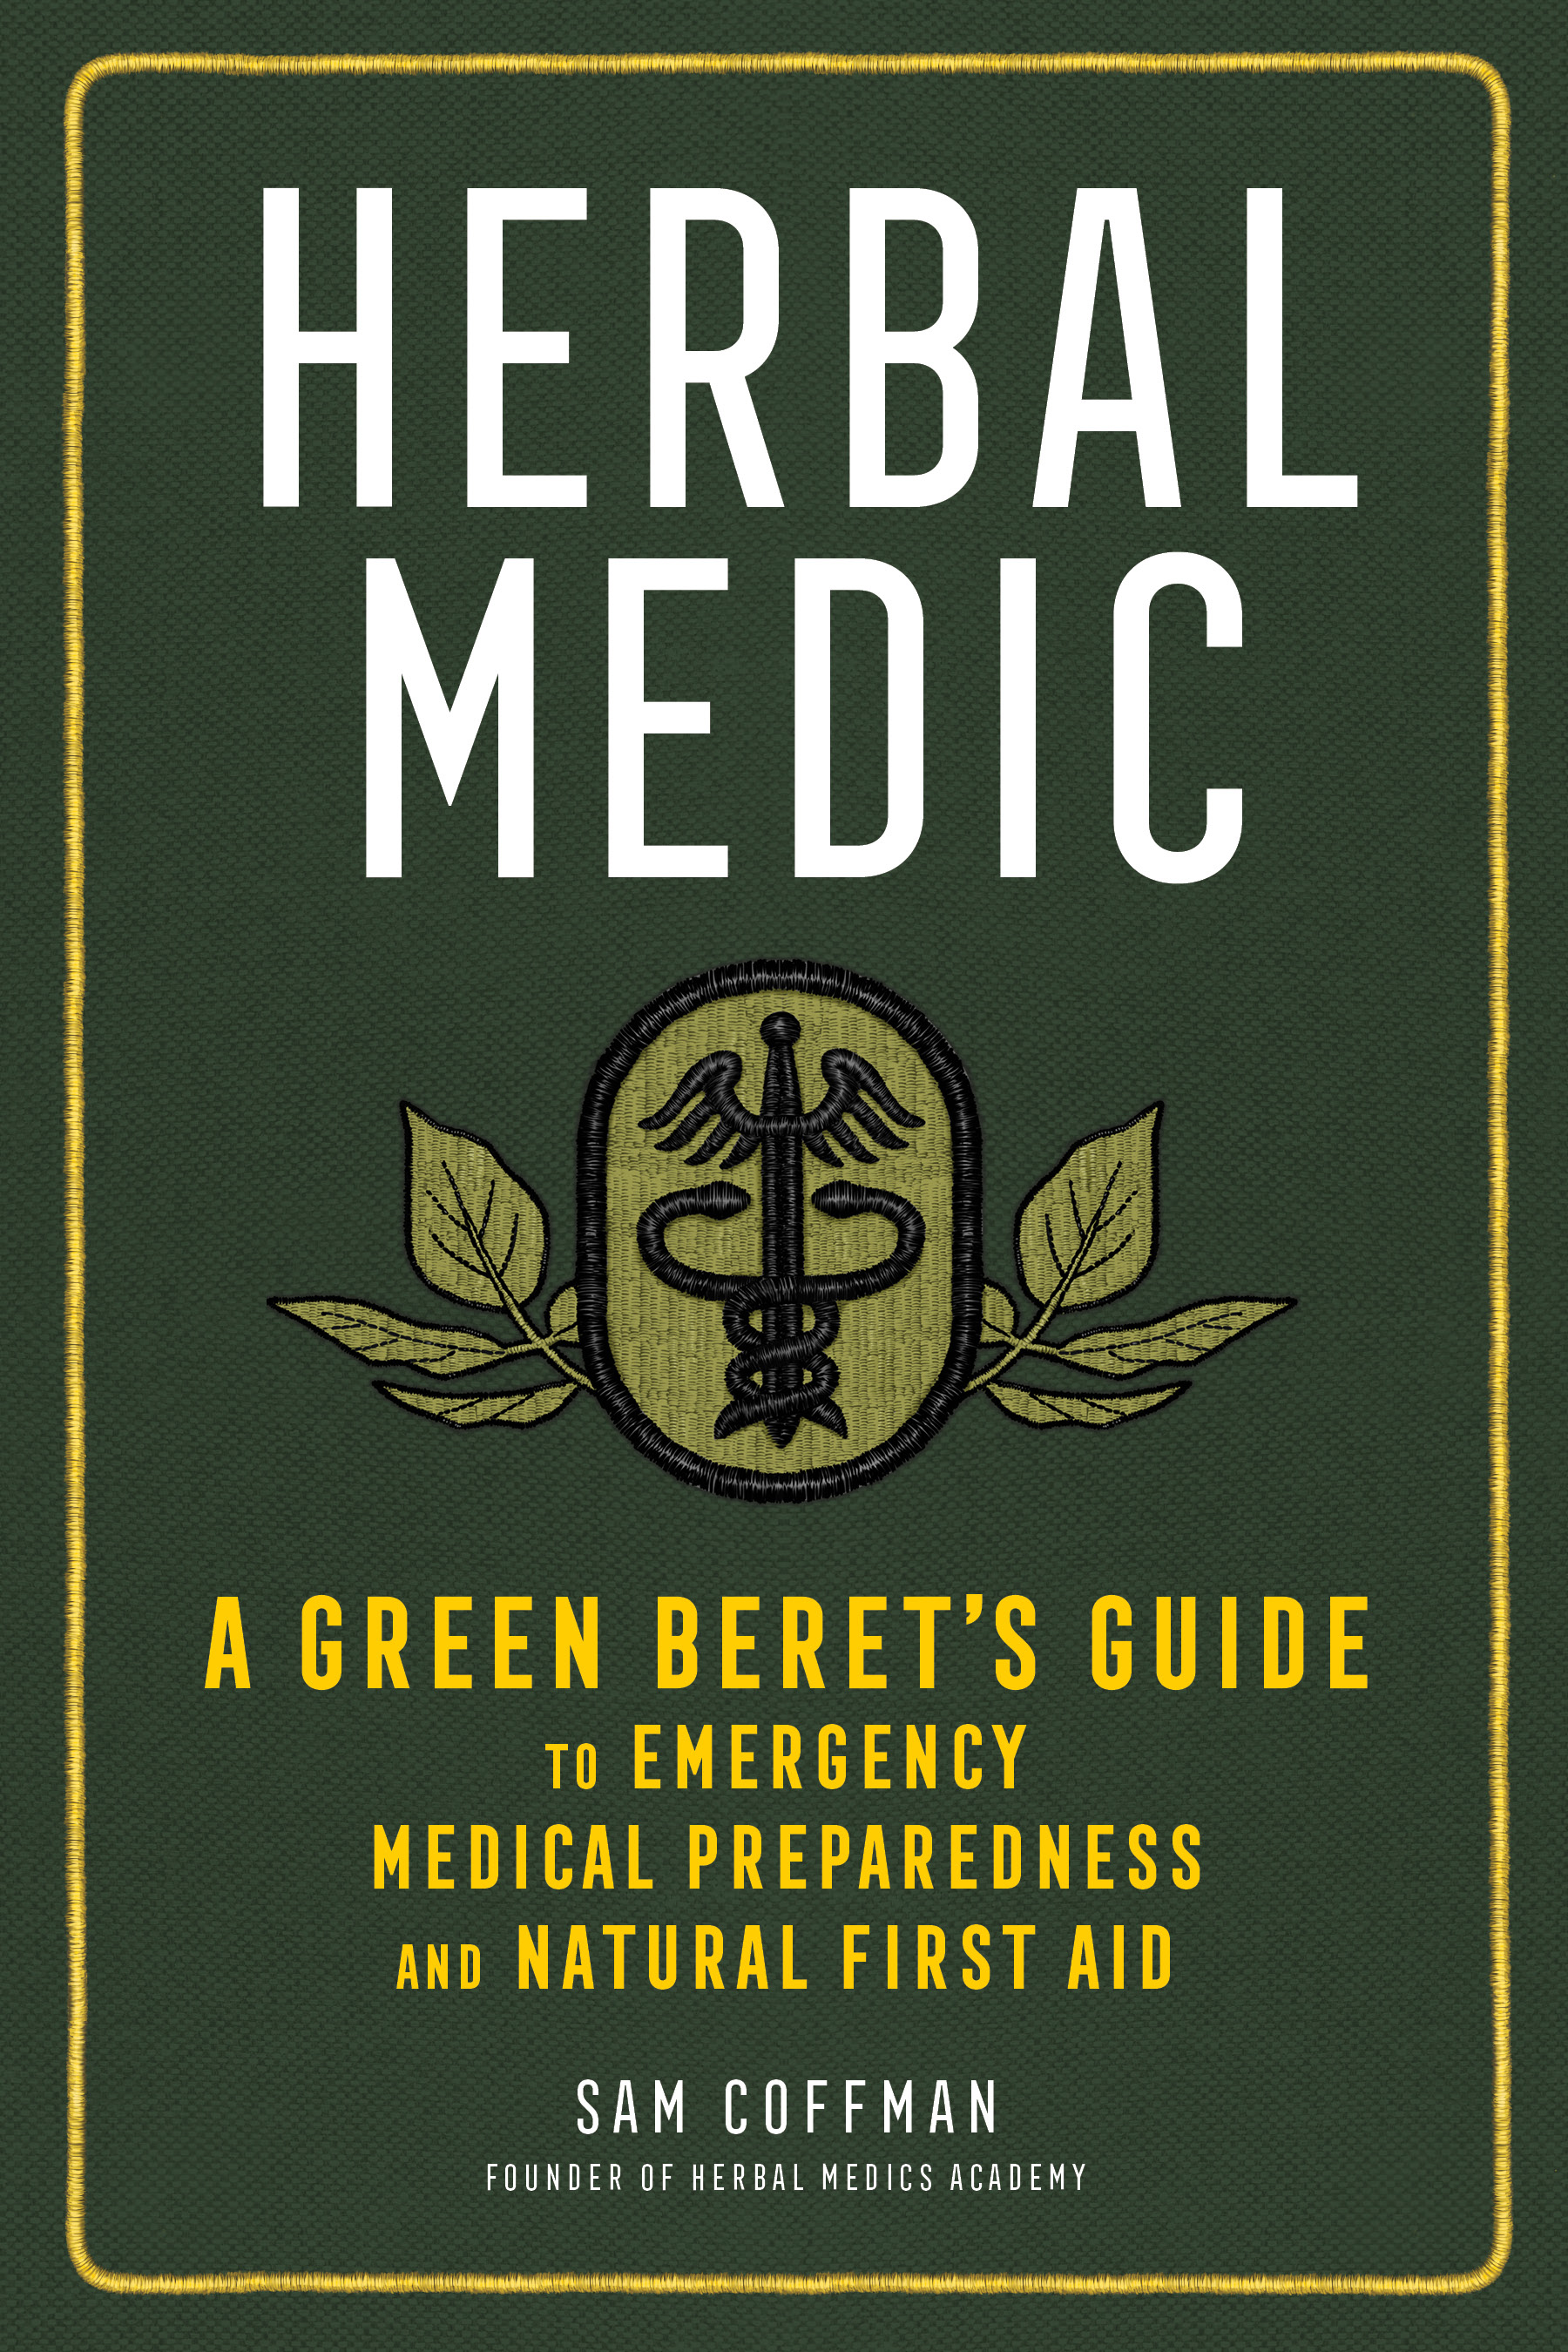 Herbal Medic A Green Beret's Guide to Emergency Medical Preparedness and Natural First Aid - Sam Coffman